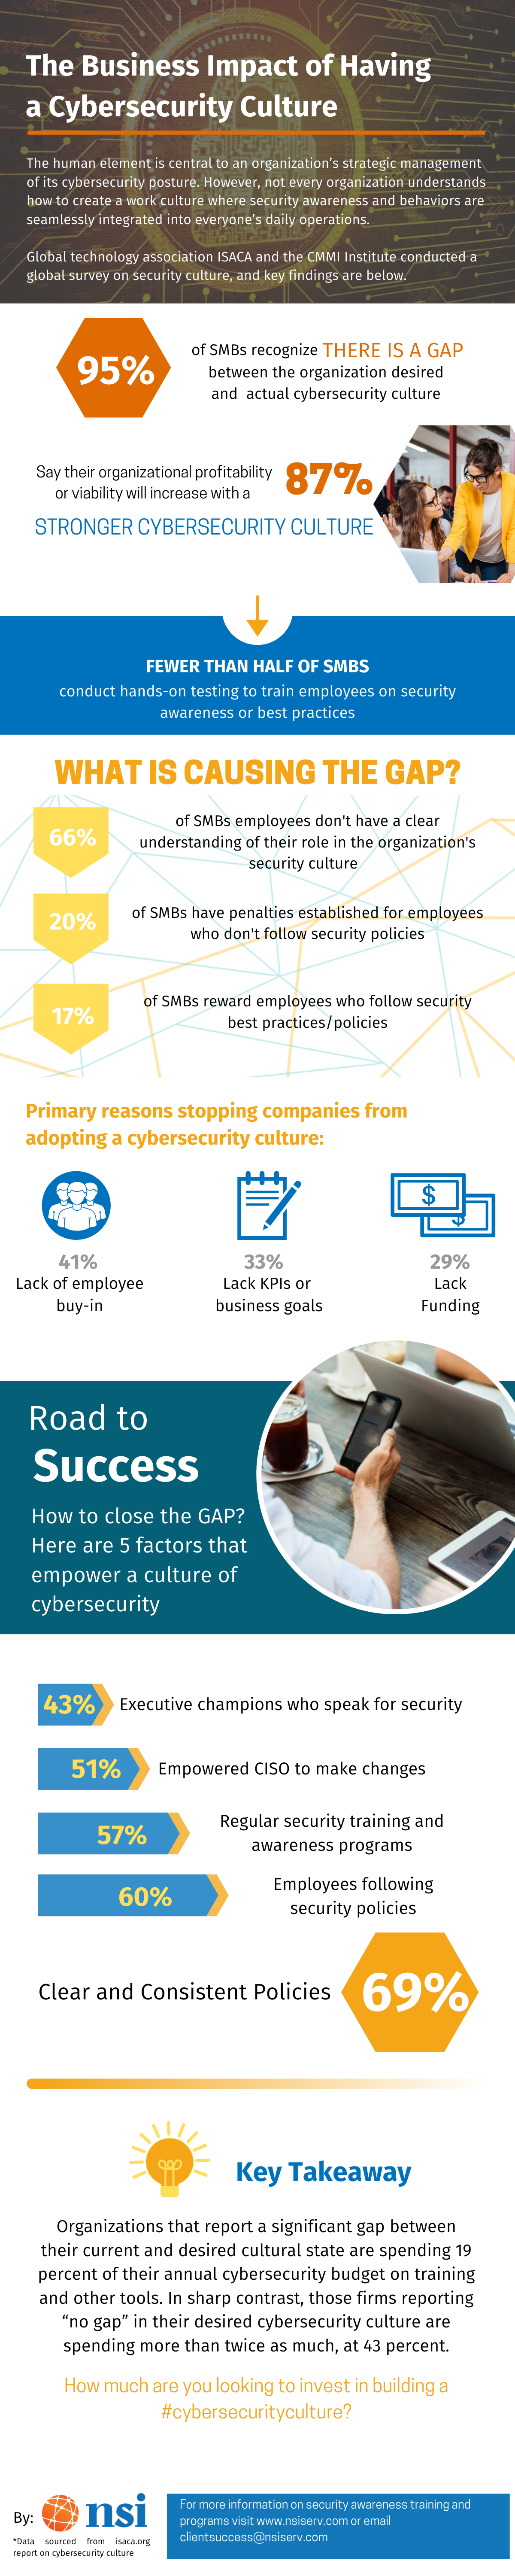 The Business Impact of a Cybersecurity Culture - NSI